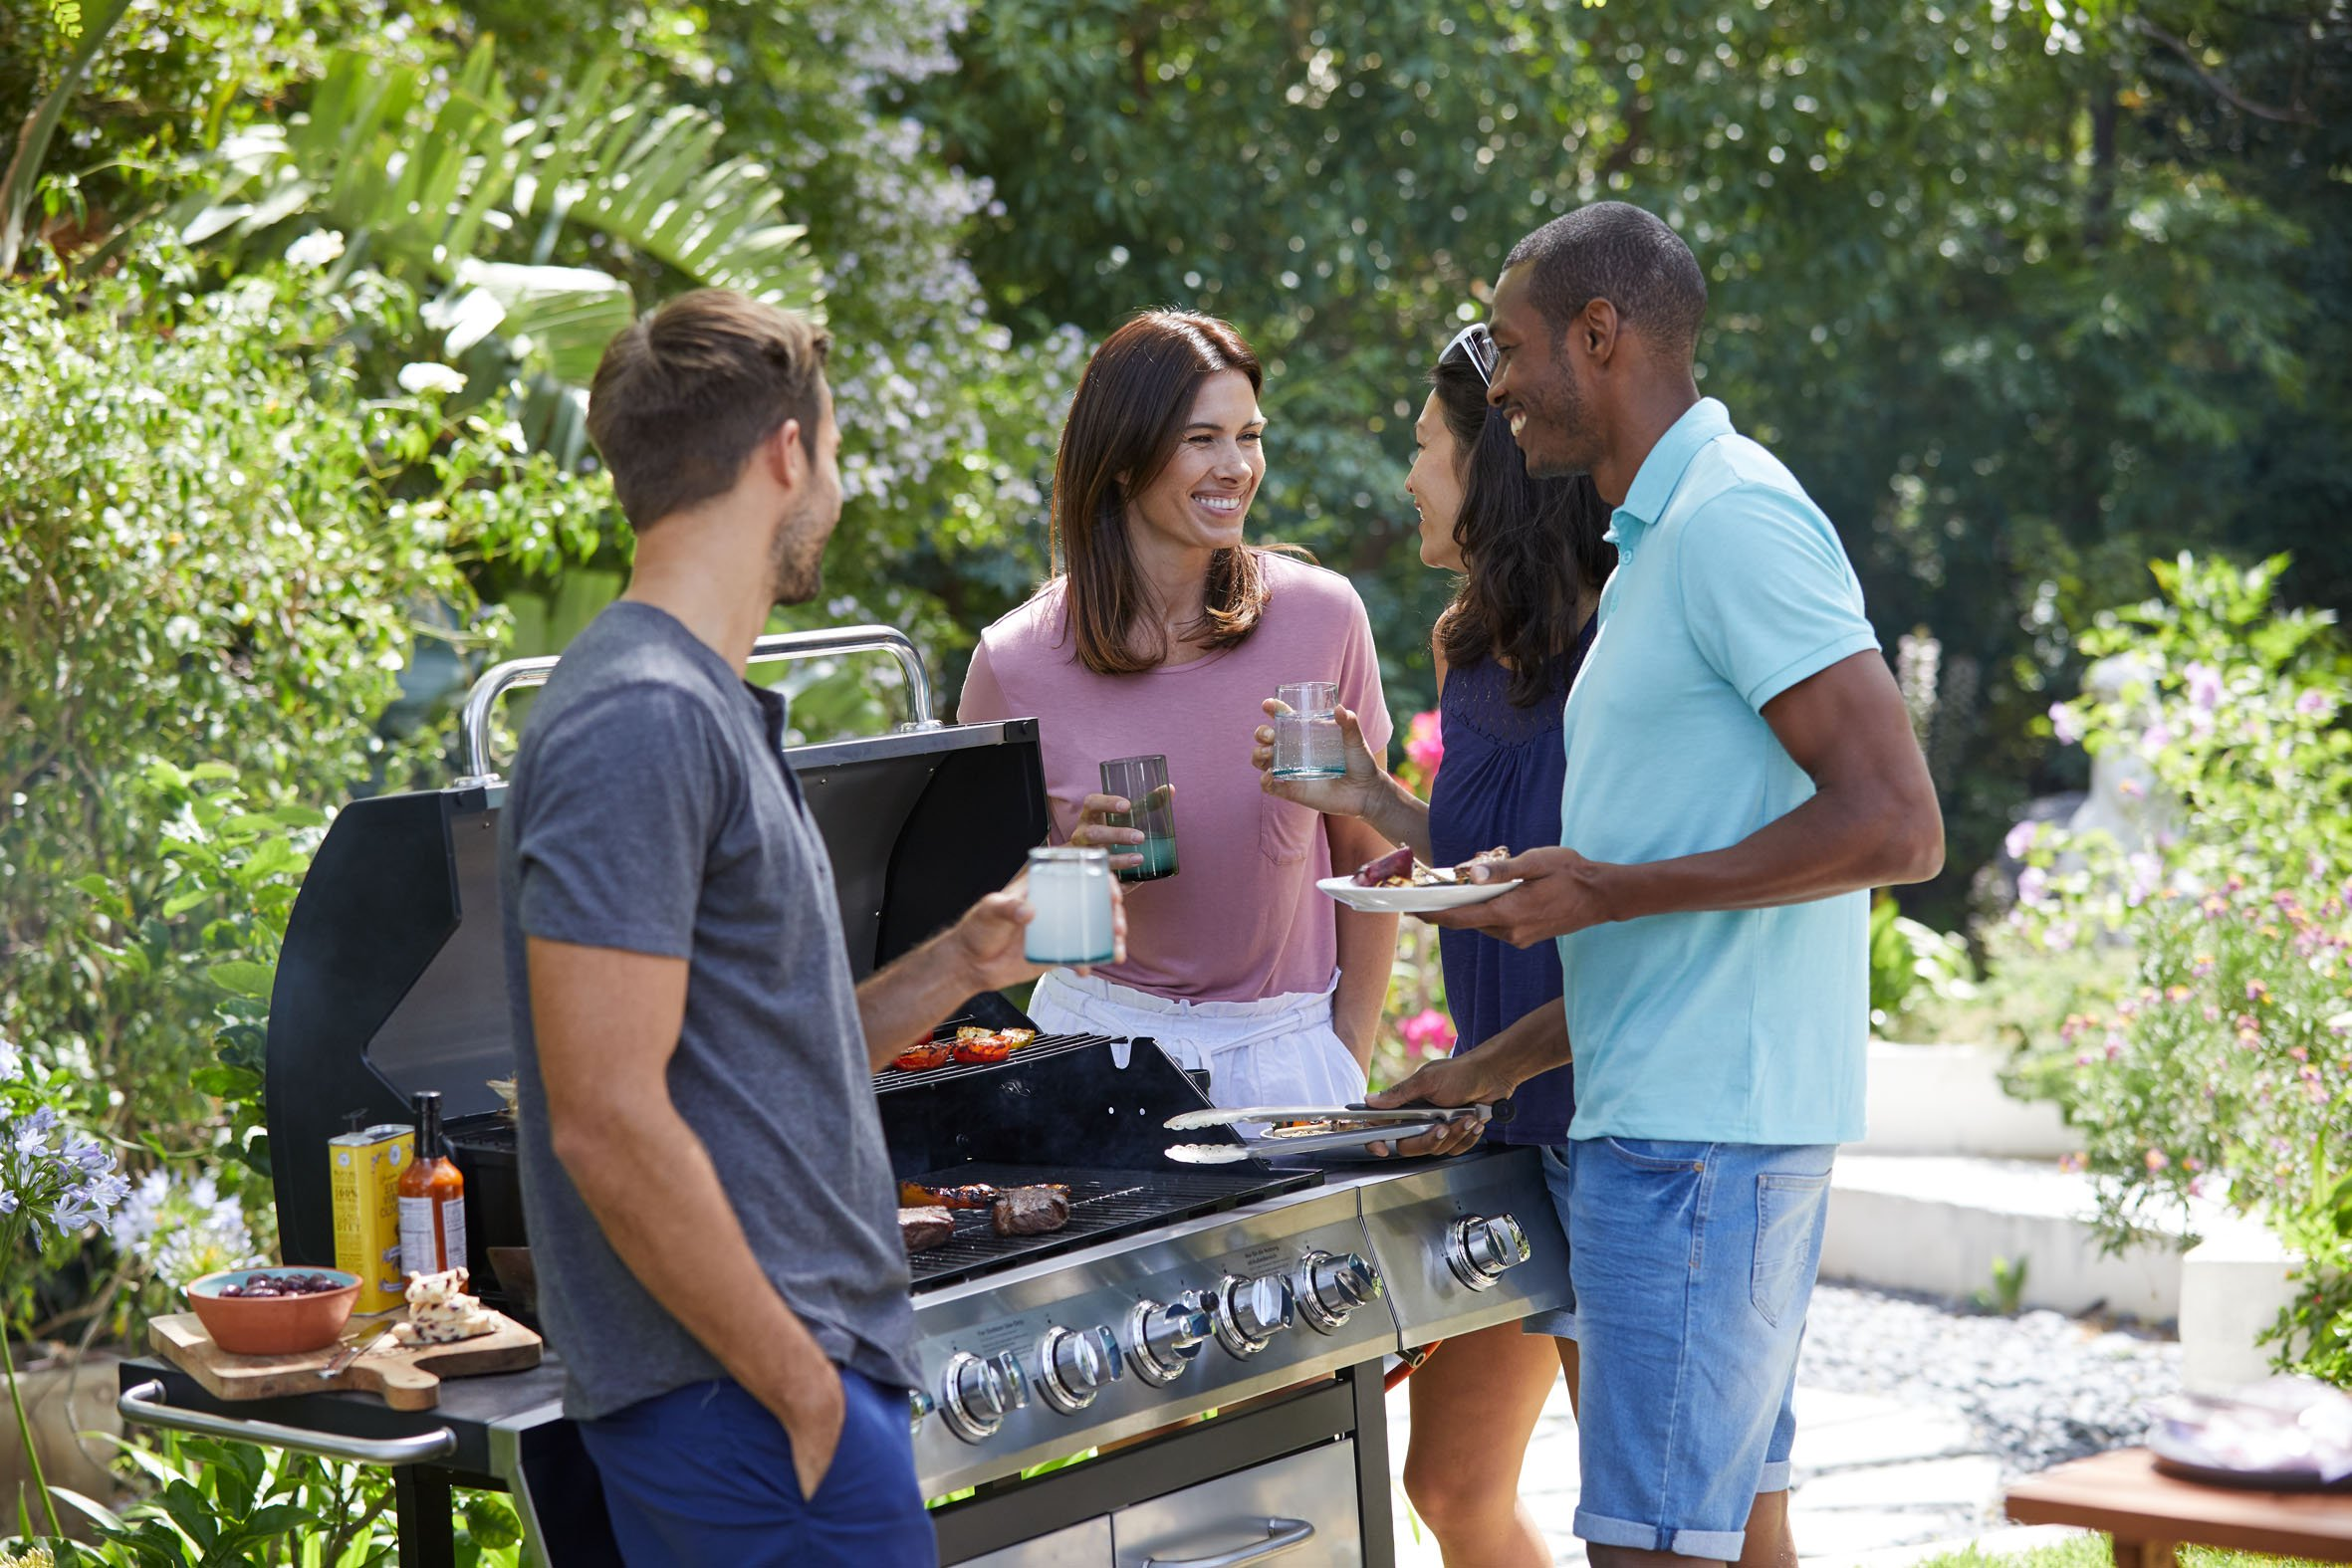 People at a BBQ garden party